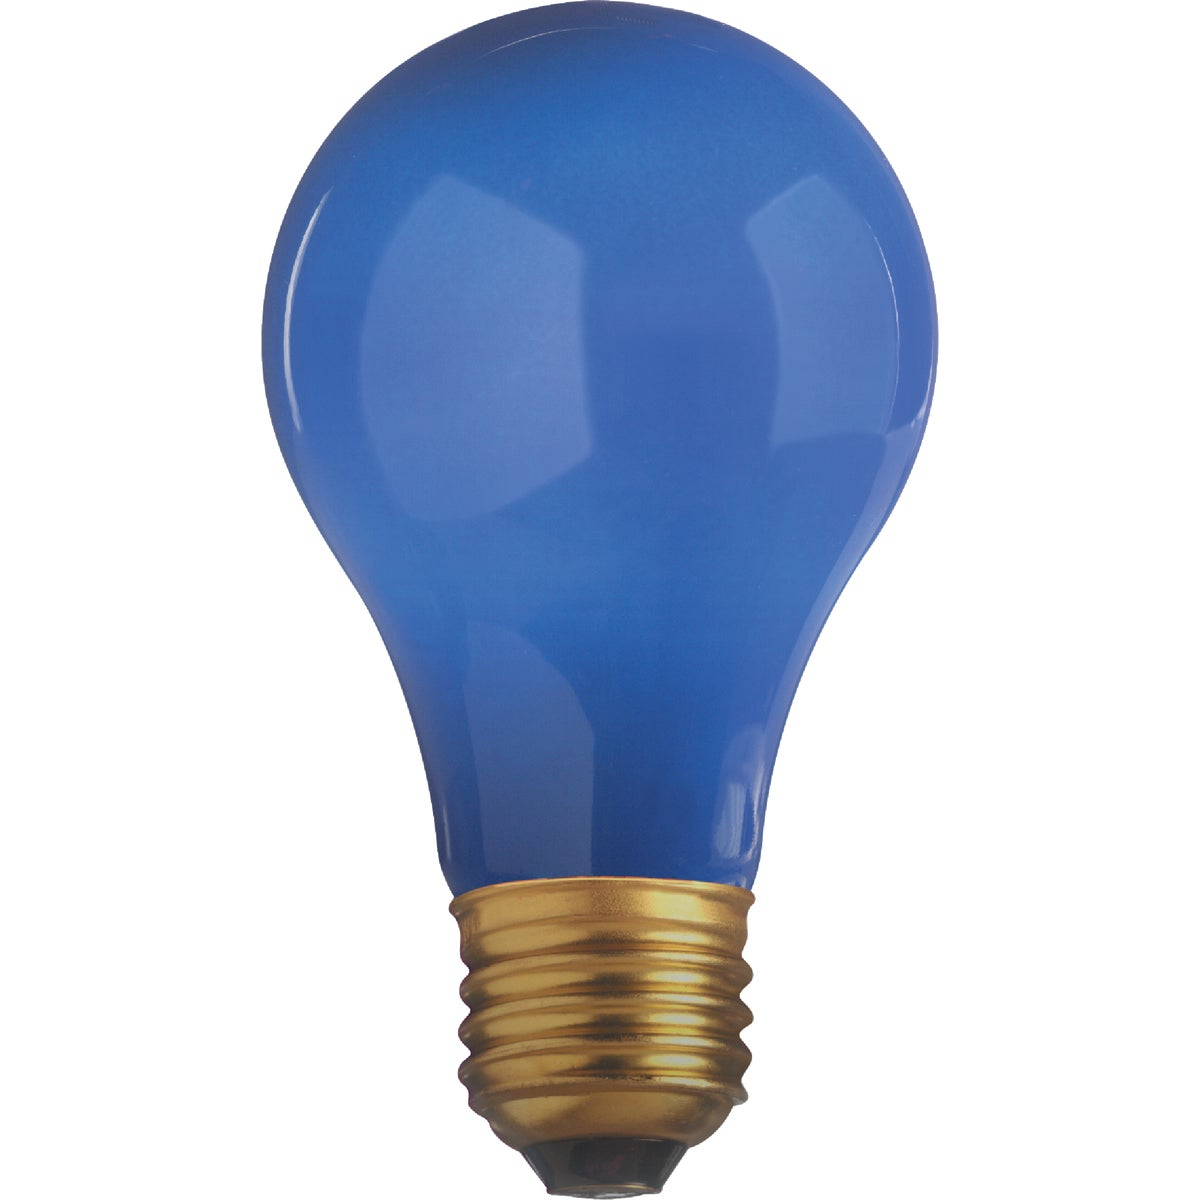 25W BLUE PARTY BULB - 49724 by G E Lighting